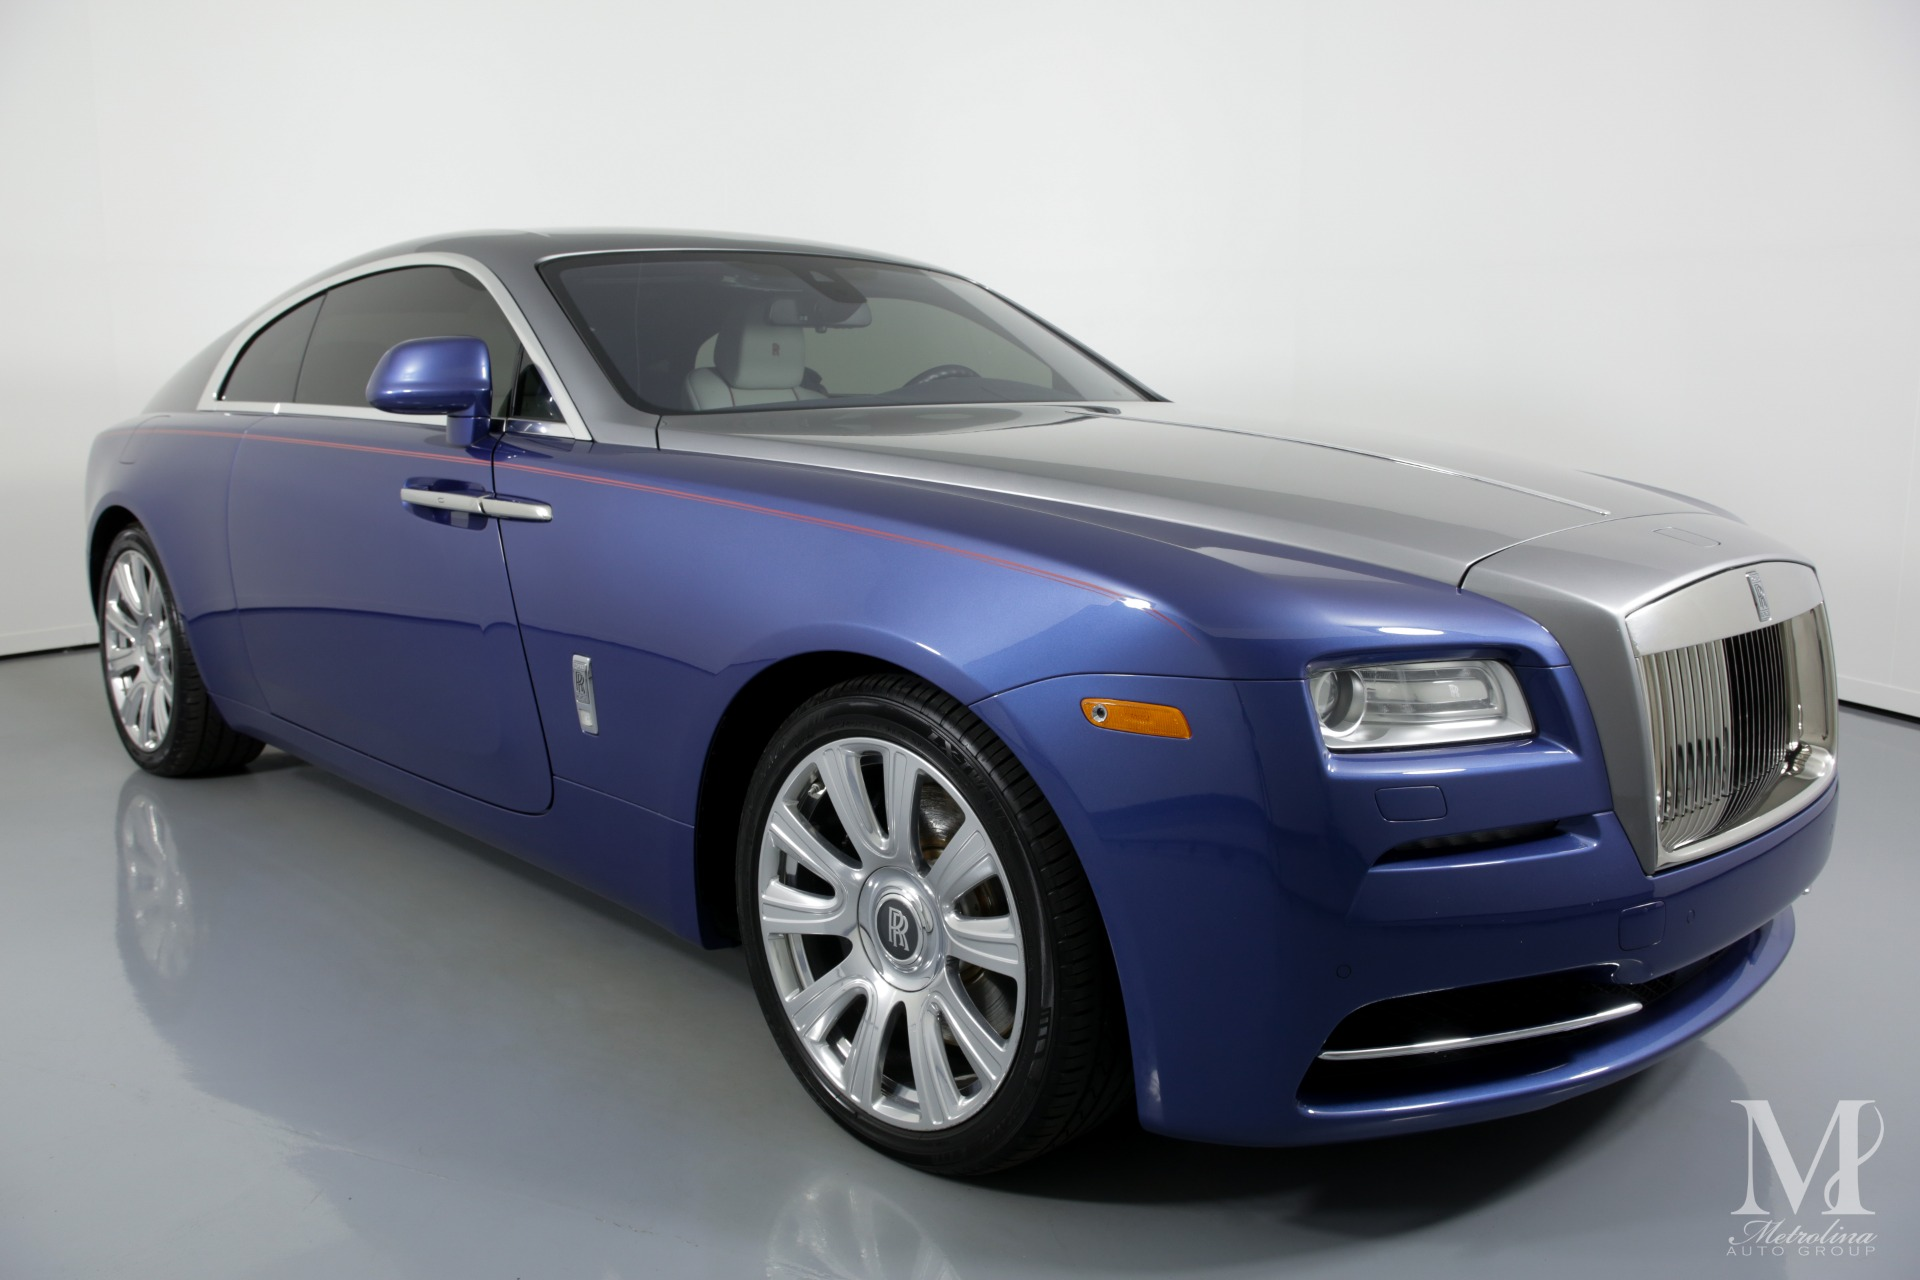 Used 2015 Rolls-Royce Wraith Base 2dr Coupe for sale Sold at Metrolina Auto Group in Charlotte NC 28217 - 2